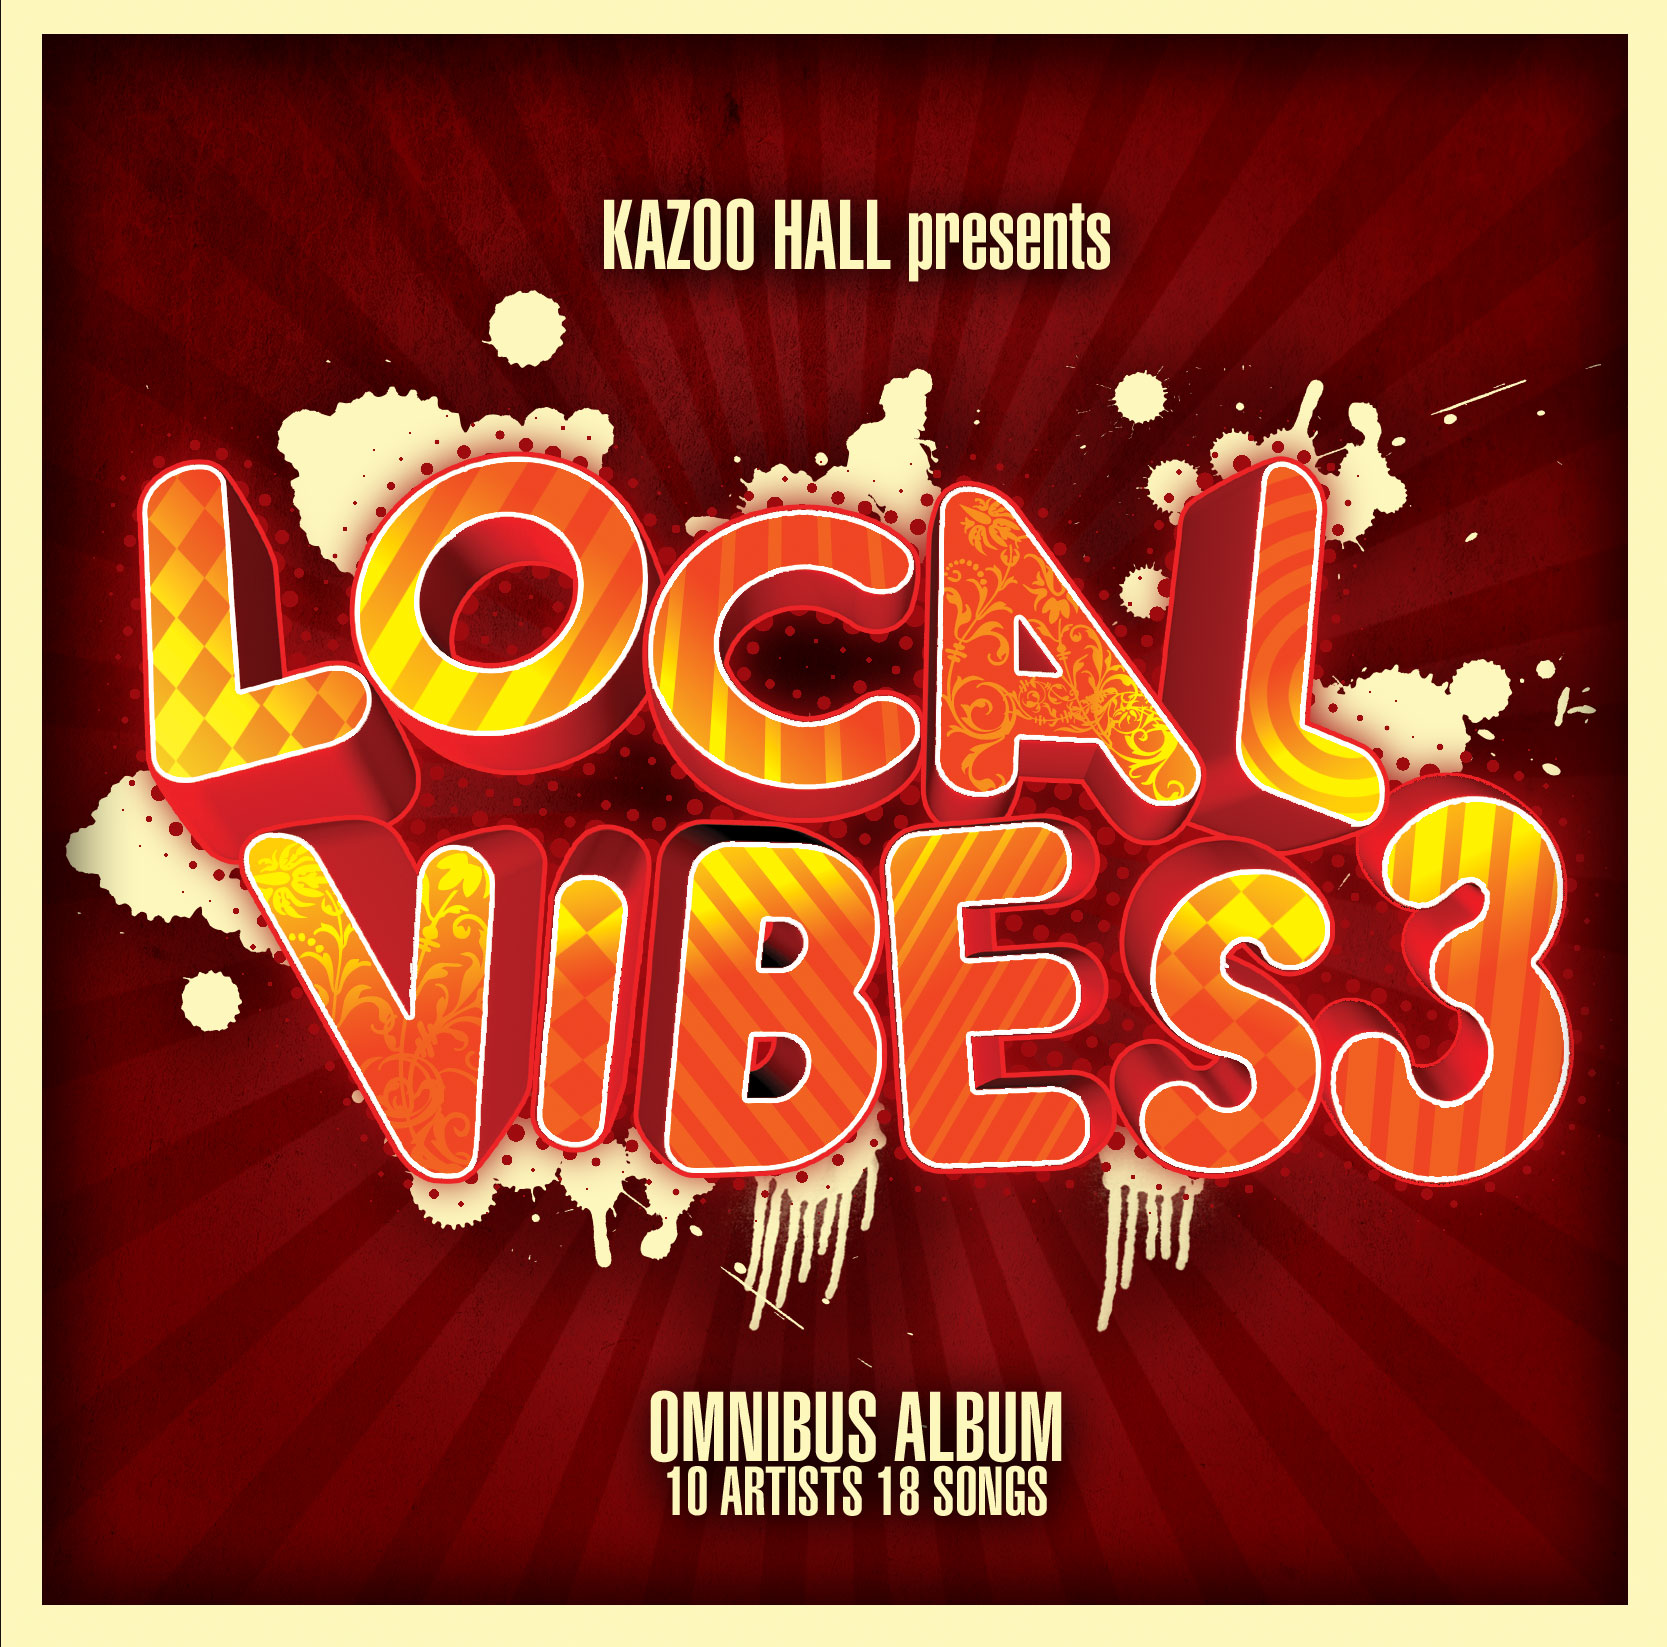 LOCAL VIBES 3